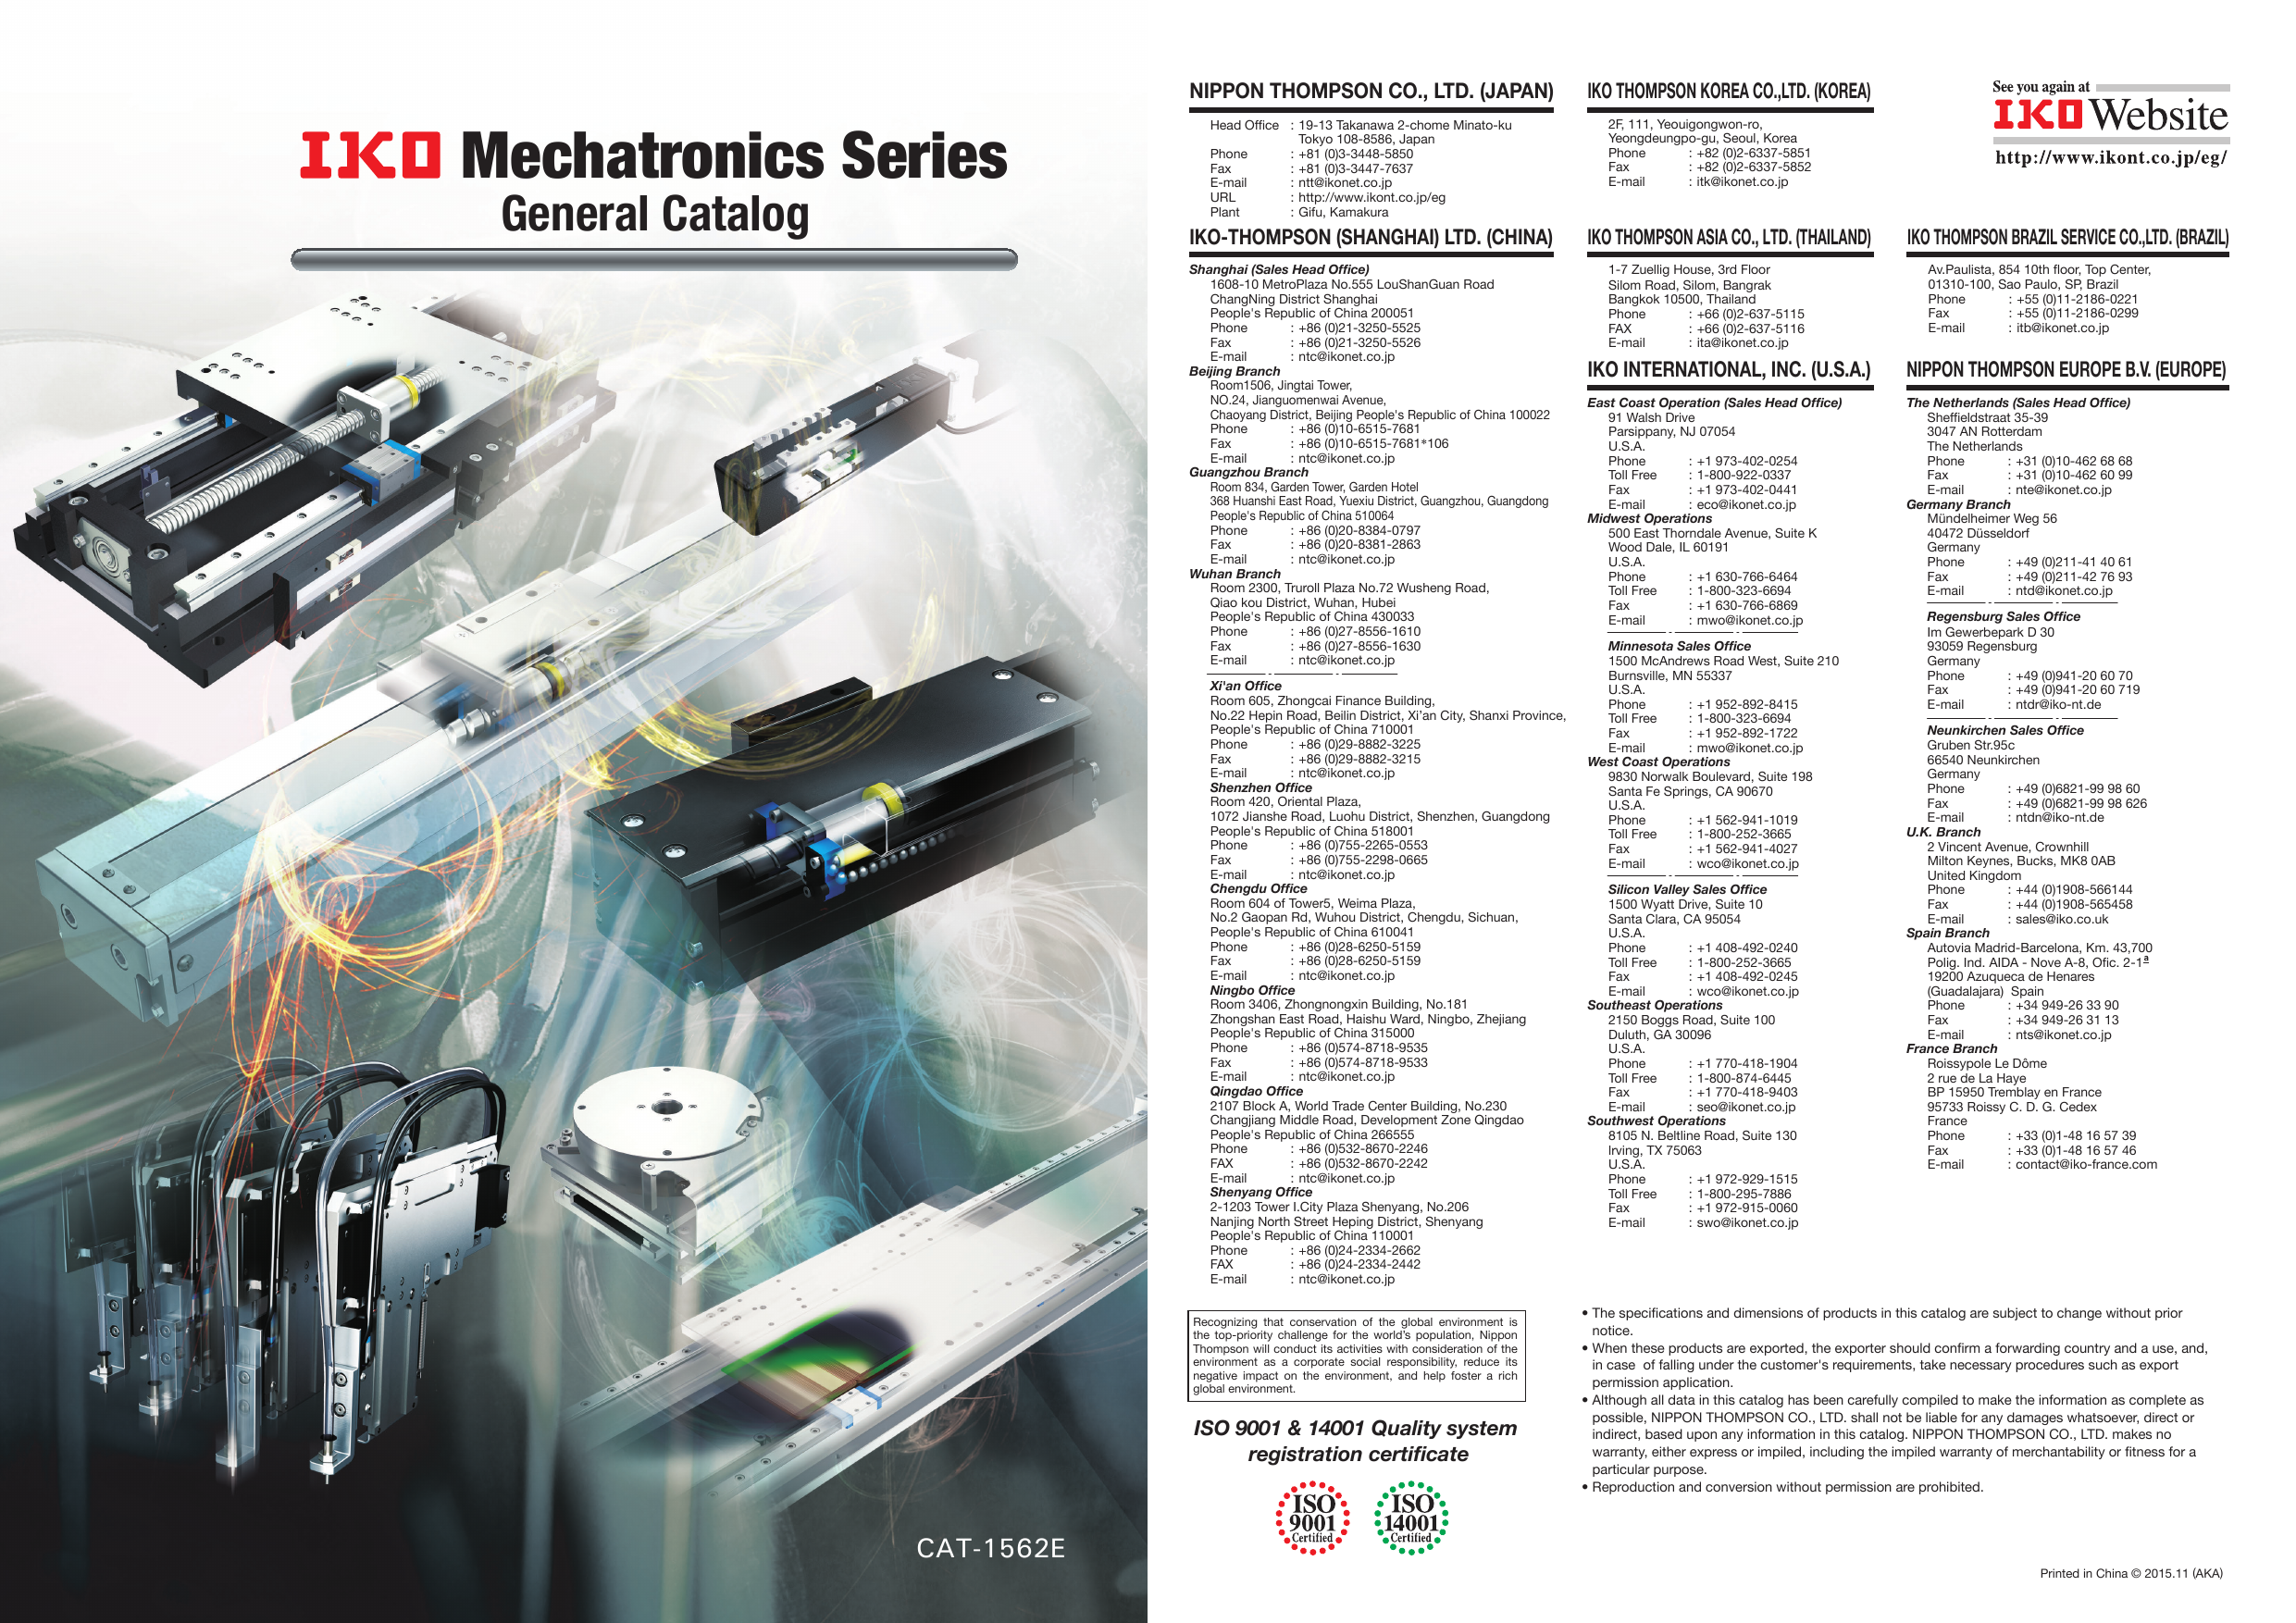 IKO Mechatronics Series General Catalog